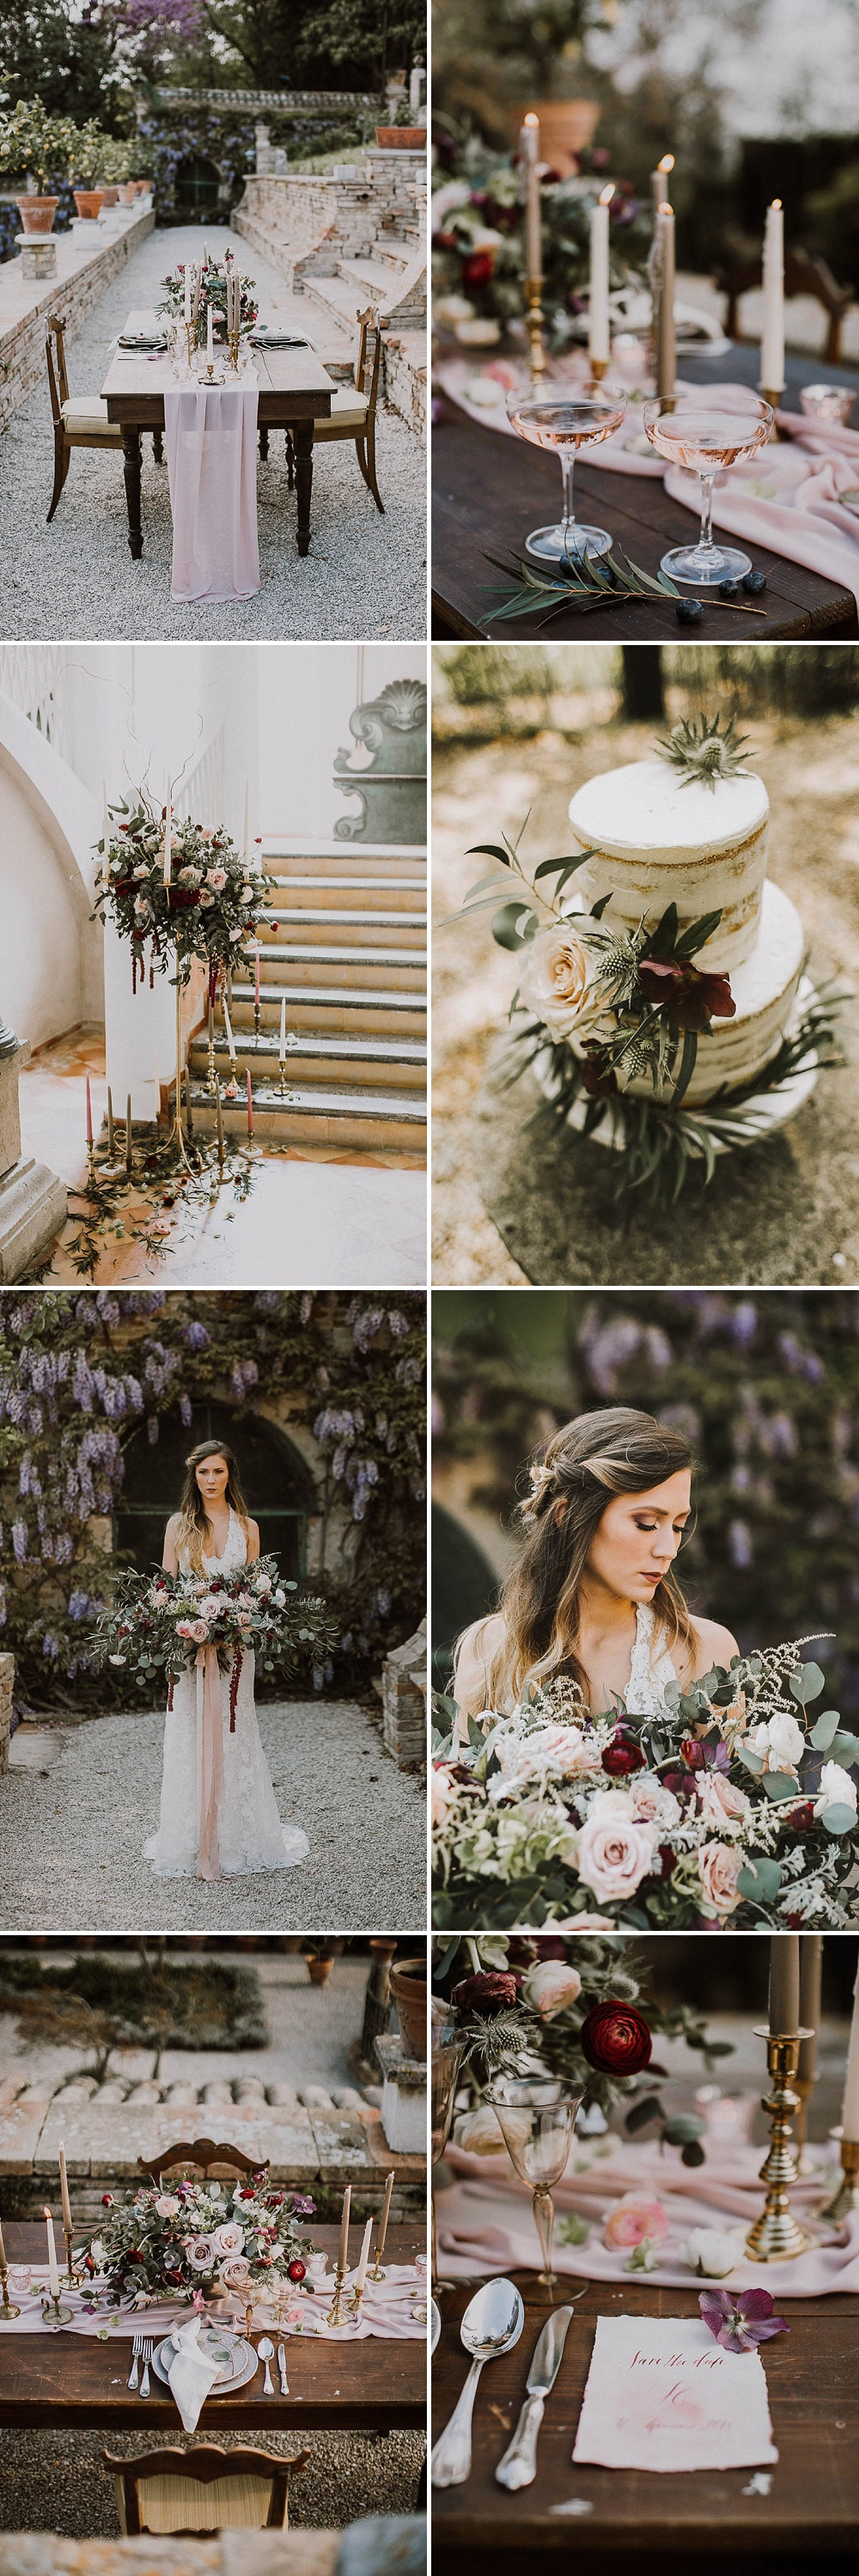 Destination Wedding Inspiration With A Rose Pink & Marsala Colour Palette